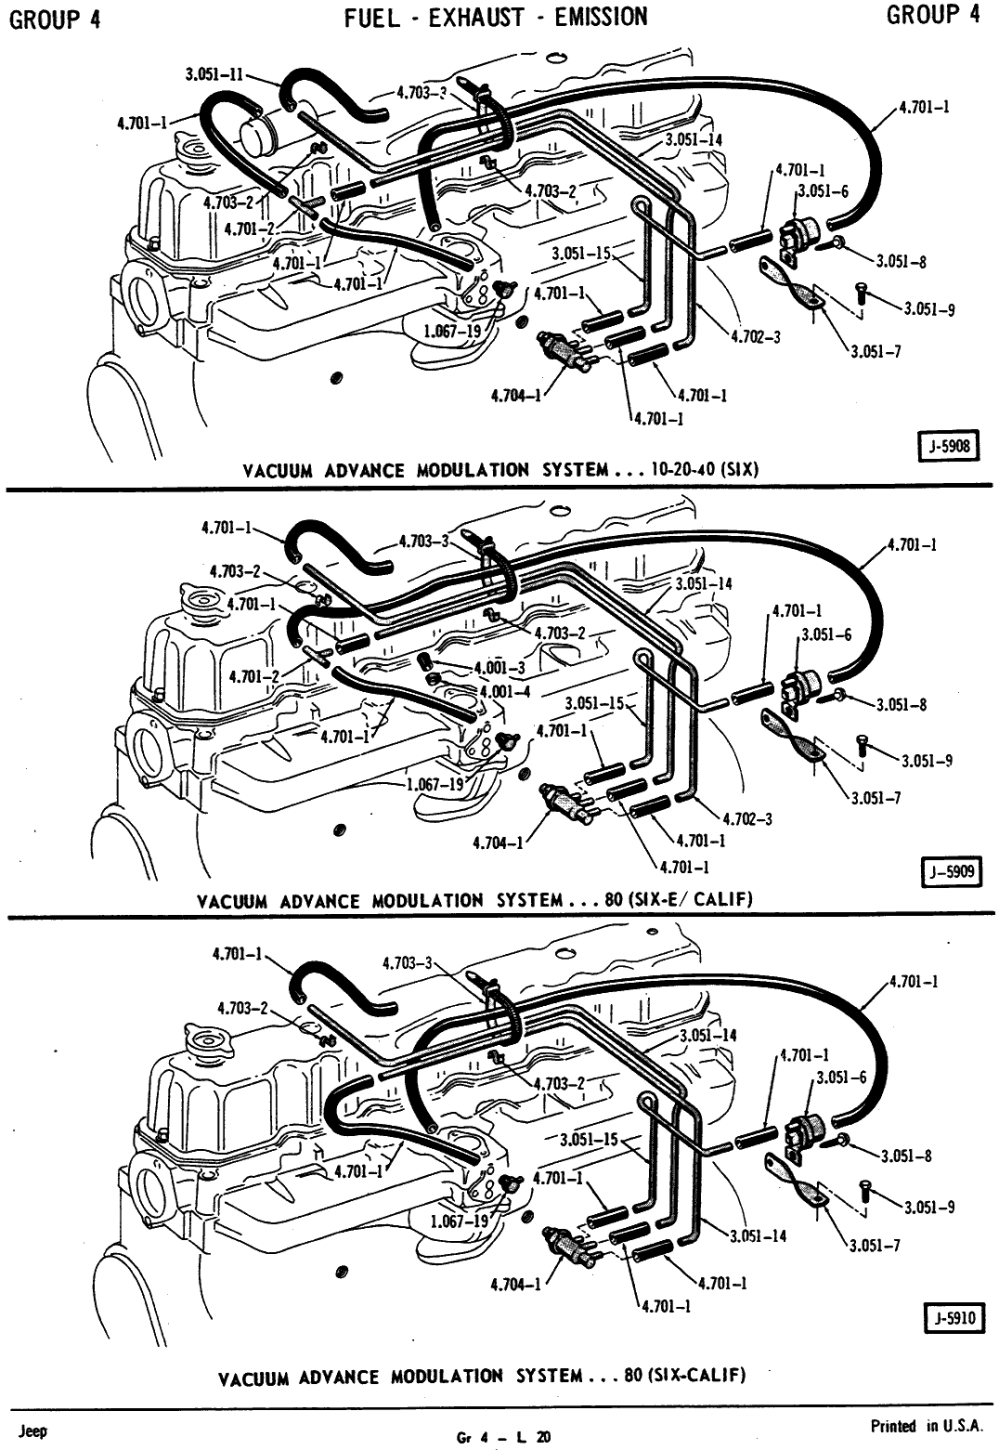 medium resolution of 2000 jeep grand cherokee vacuum diagram wiring diagram expert jeep commander vacuum line diagram 1992 jeep